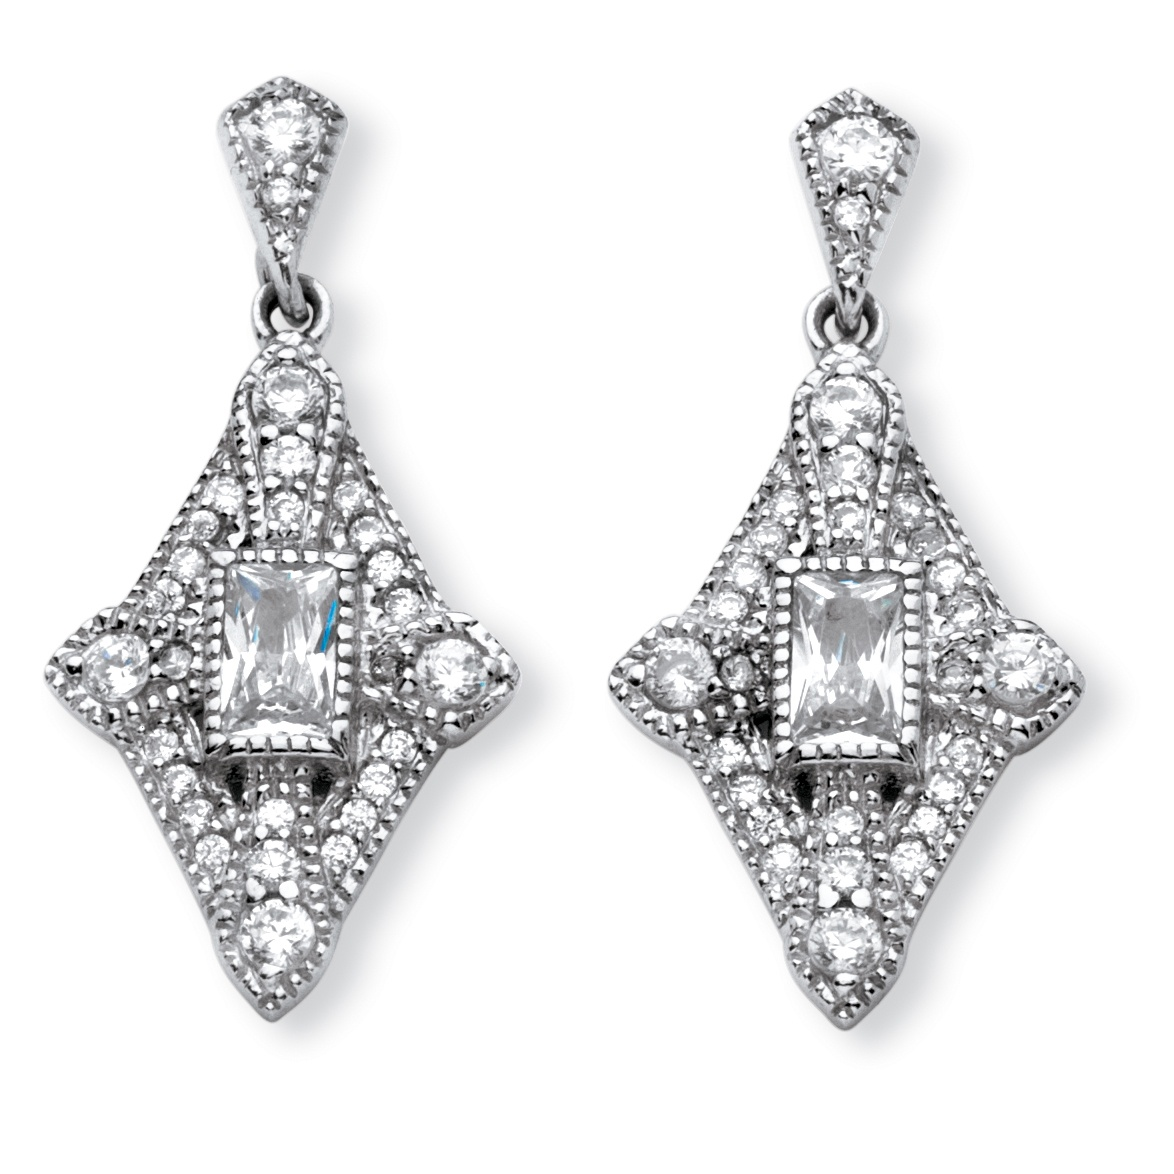 1.16 TCW Emerald-Cut Cubic Zirconia Art Deco-Inspired Earrings in Platinum Over Sterling Silver